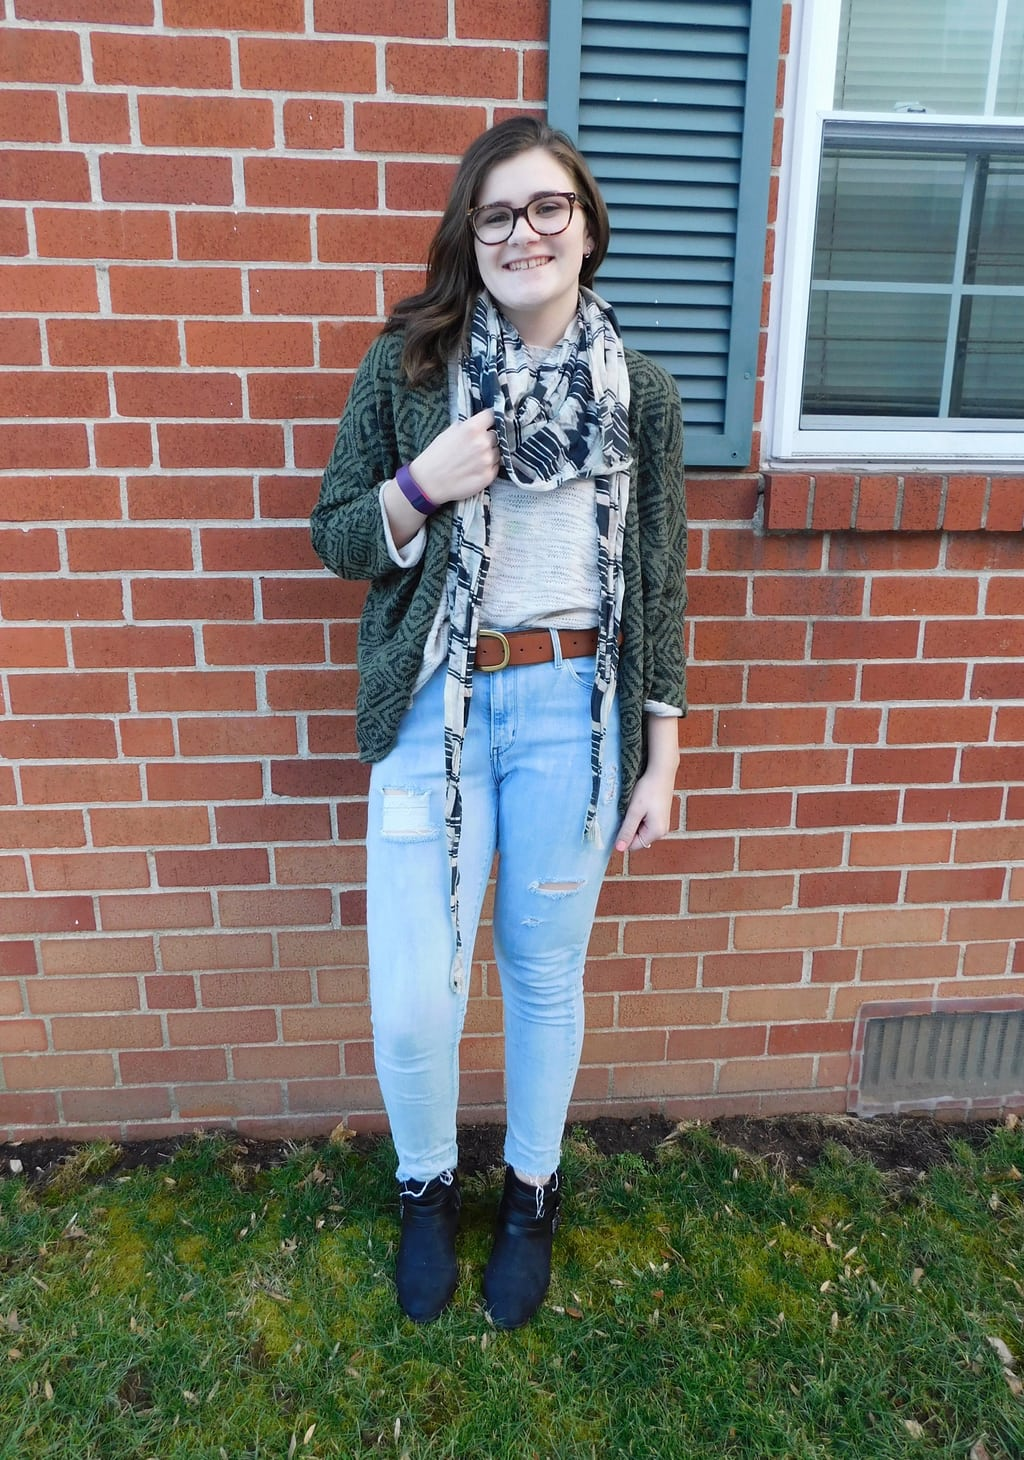 Lauren sports a cream sweater top with an olive green geometric print cardigan and a brown belt on her distressed denim skinny jeans. She tops off her look with a bold black and white scarf and black booties.